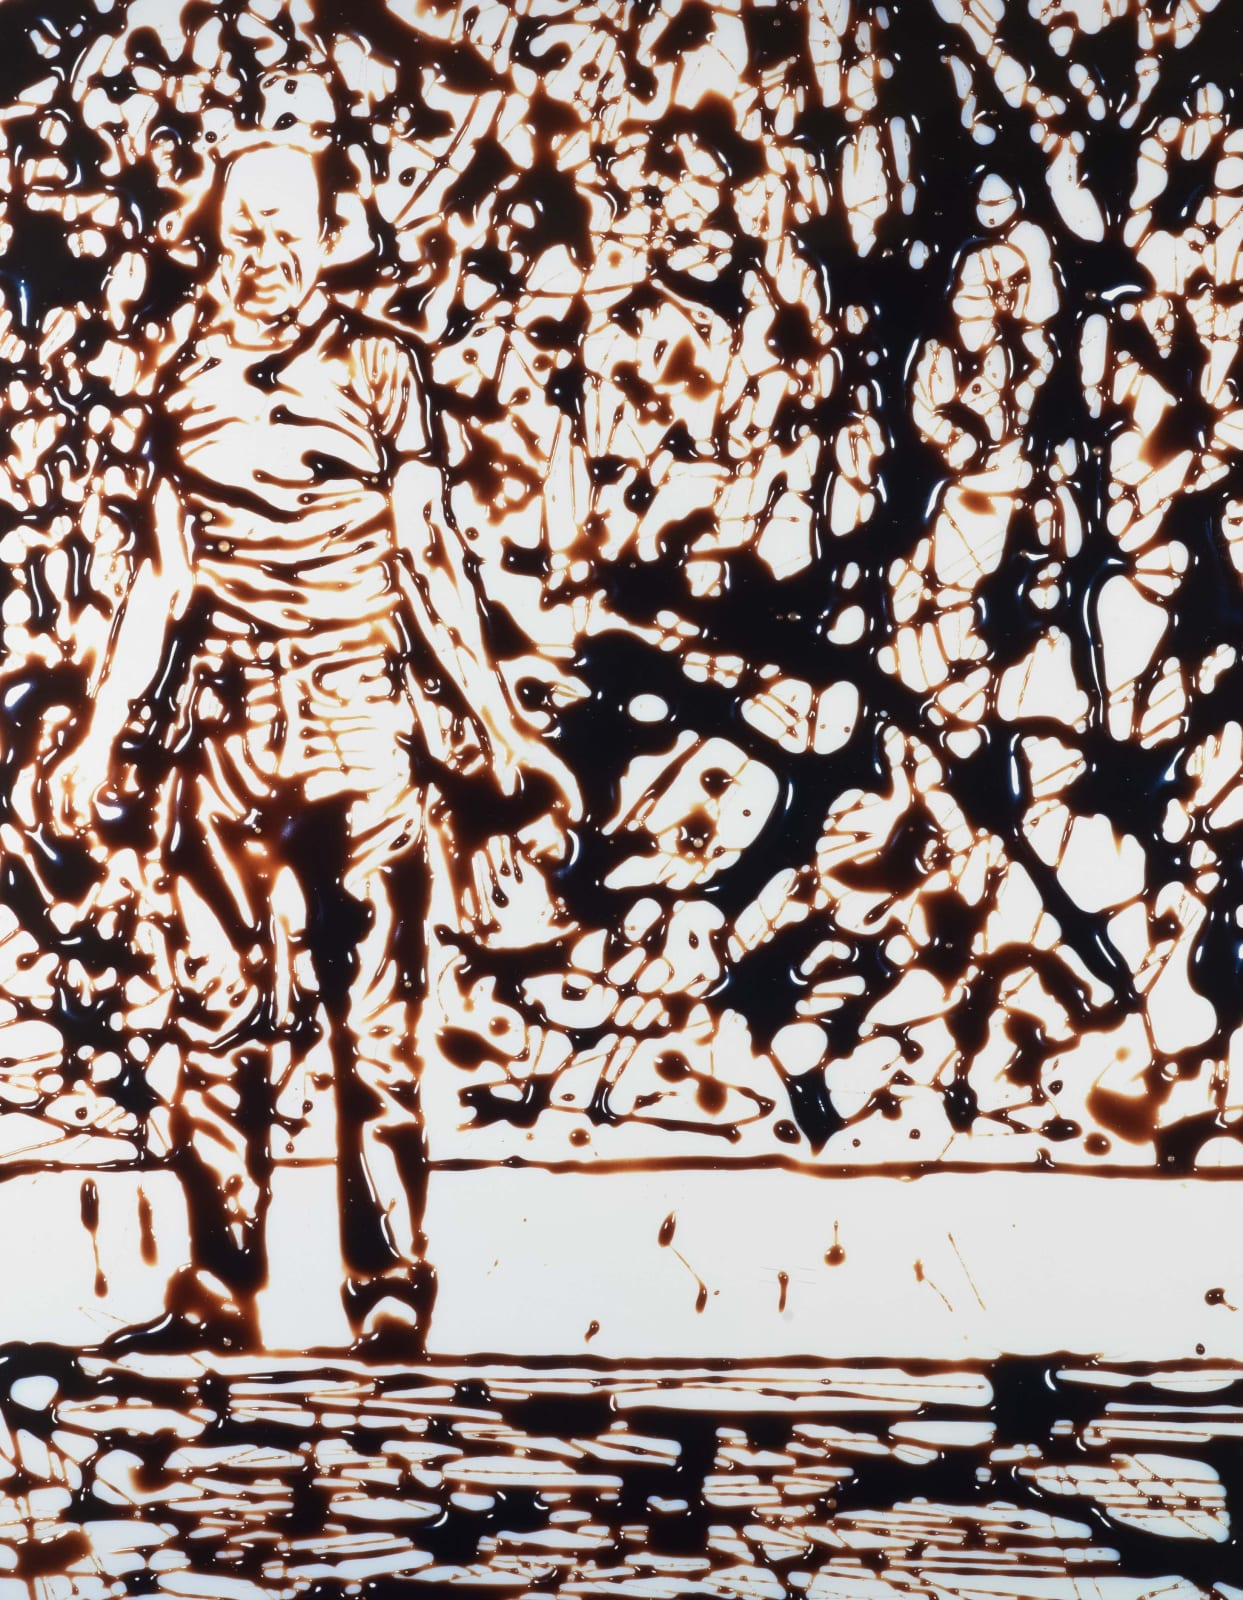 Vik Muniz photograph of Jackson Pollock standing in front of action painting rendered in chocolate syrup against white background